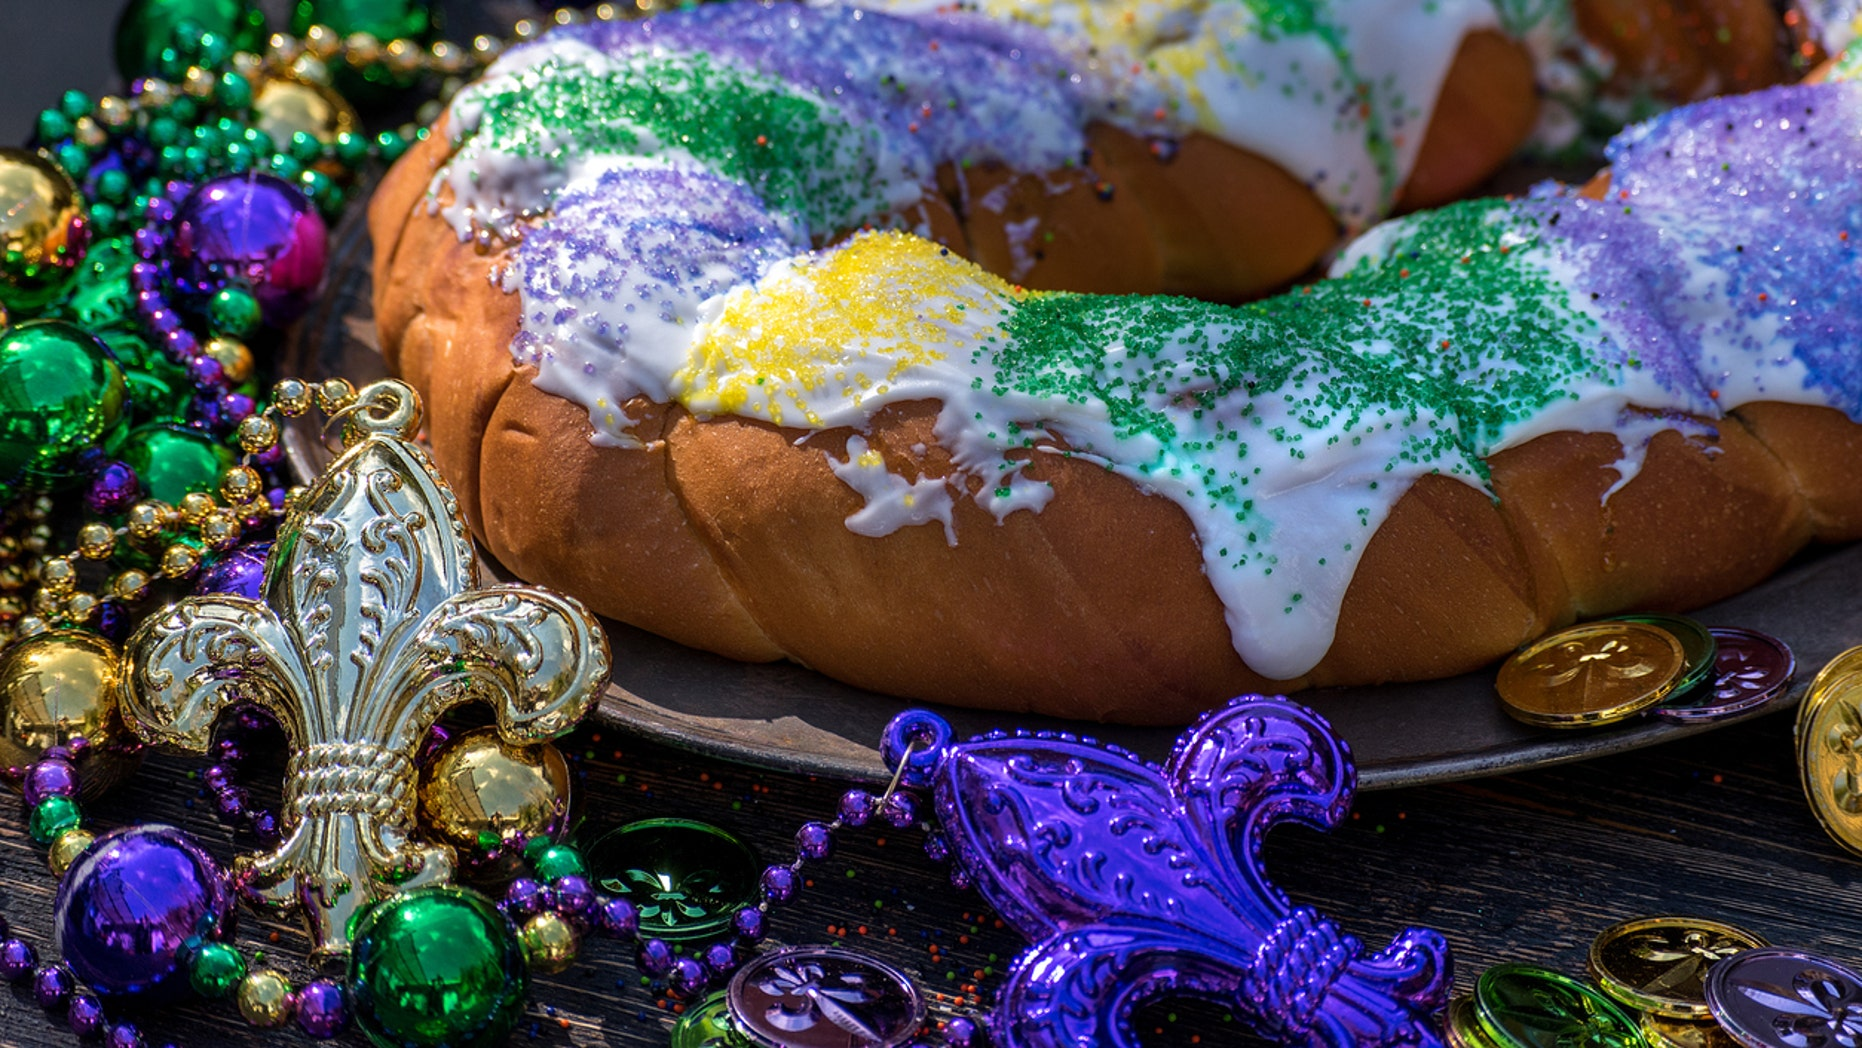 What exactly is the tri-colored confection that makes an appearance at Mardi Gras celebrations across the country?